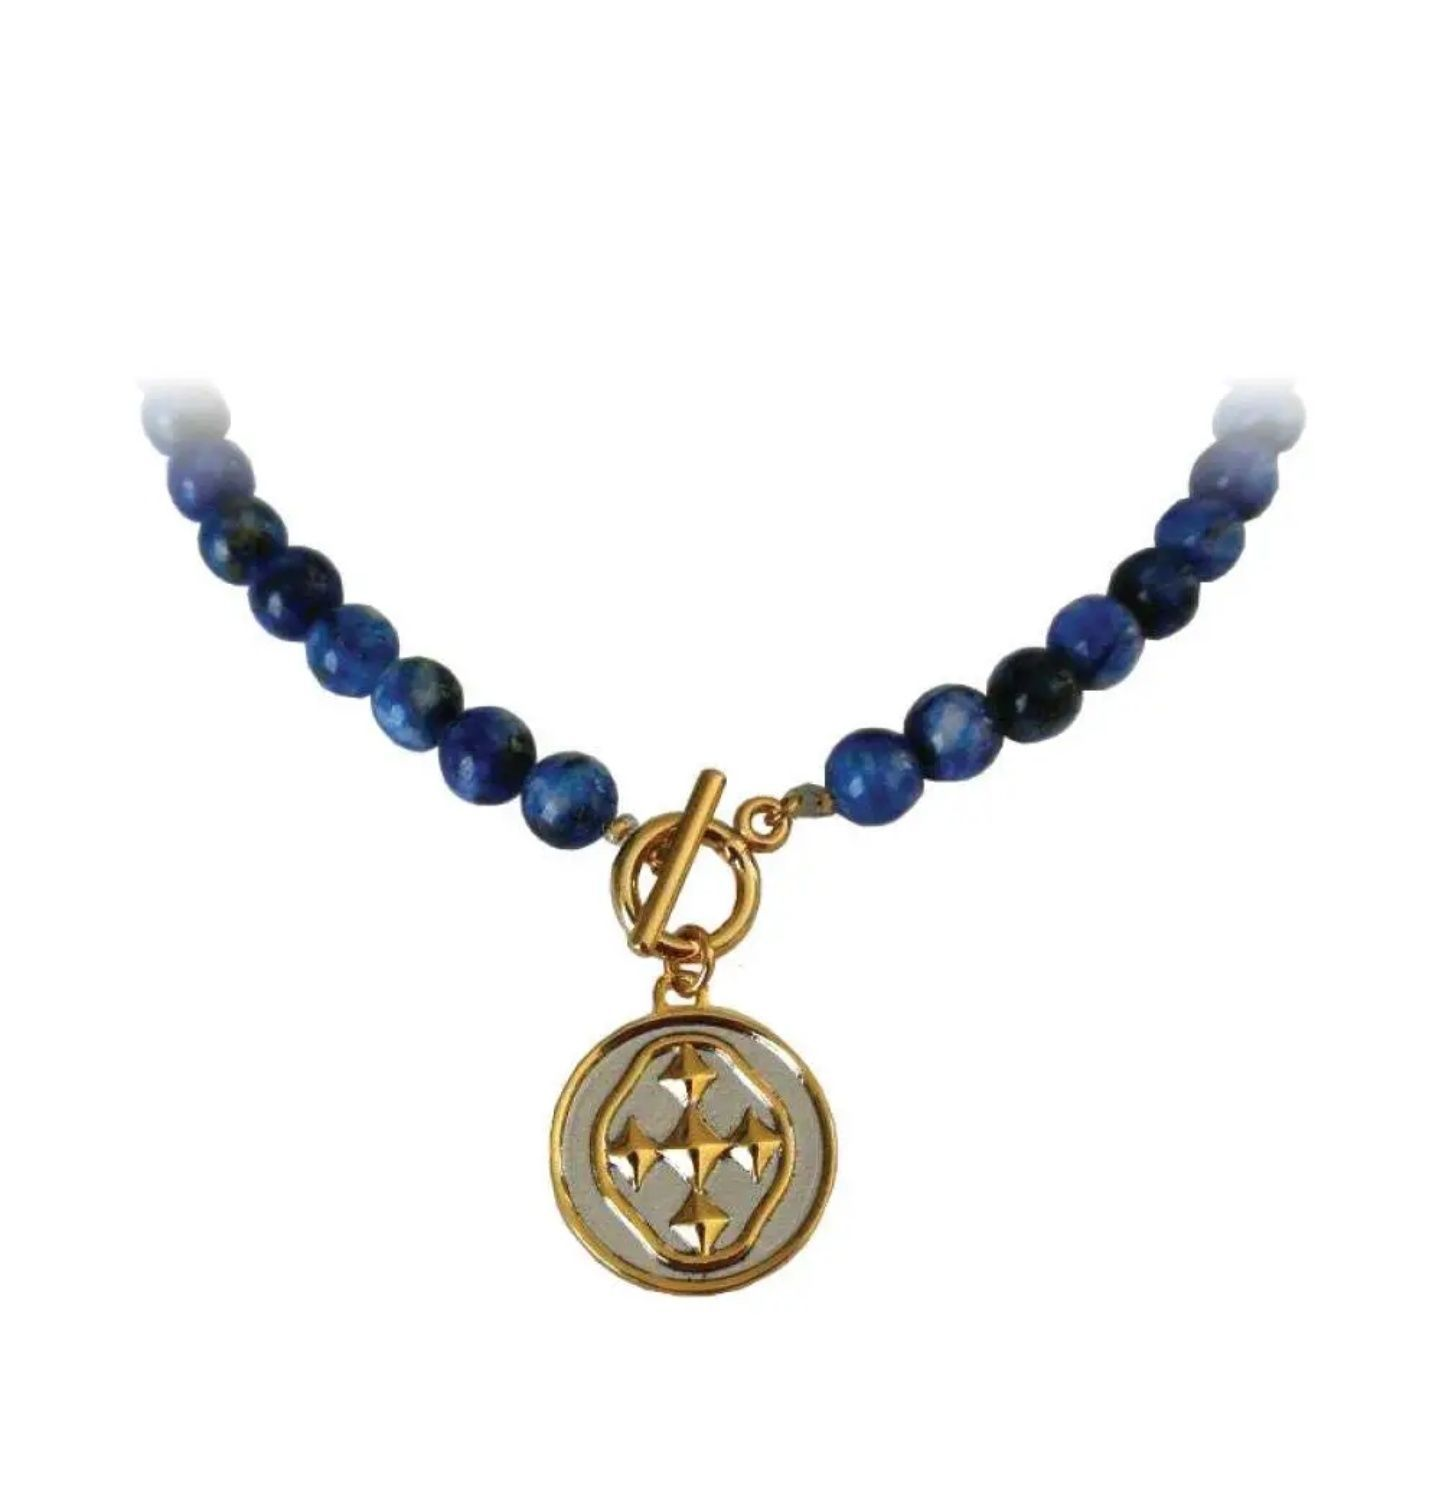 Necklace With Medallion Shield Florist